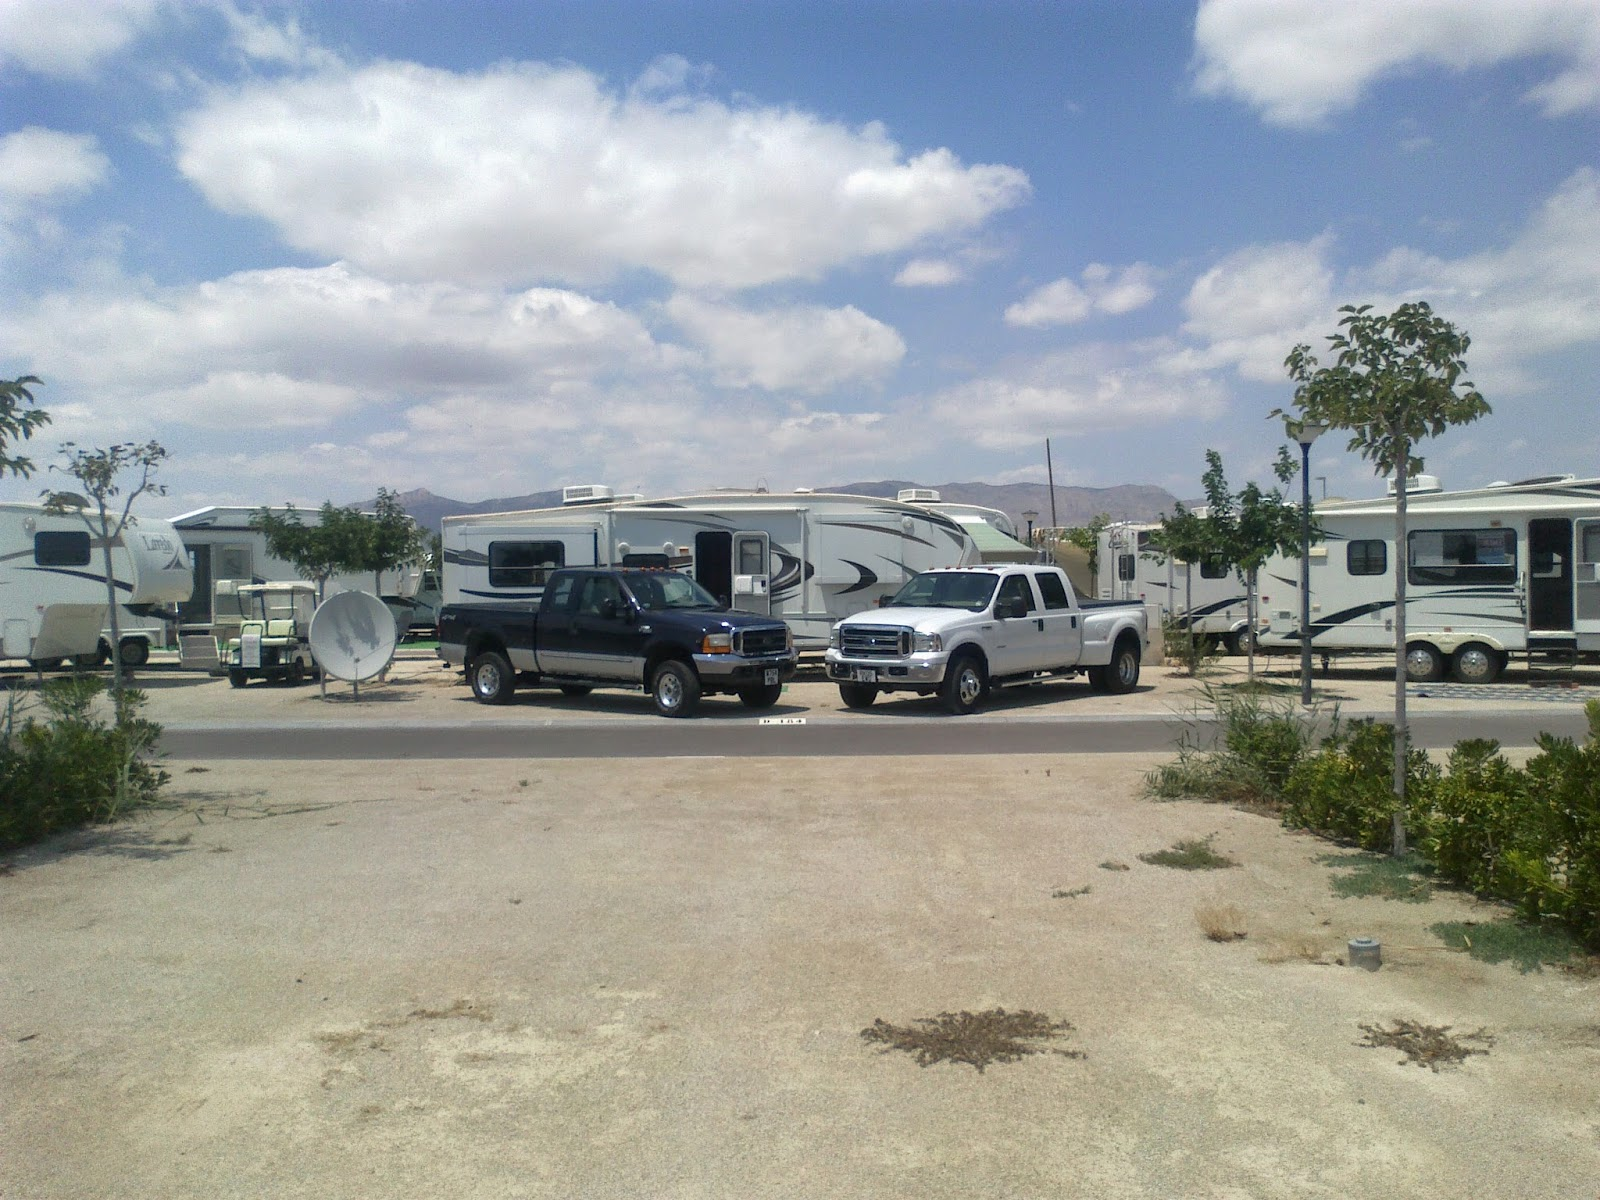 caravans for sale in Spain